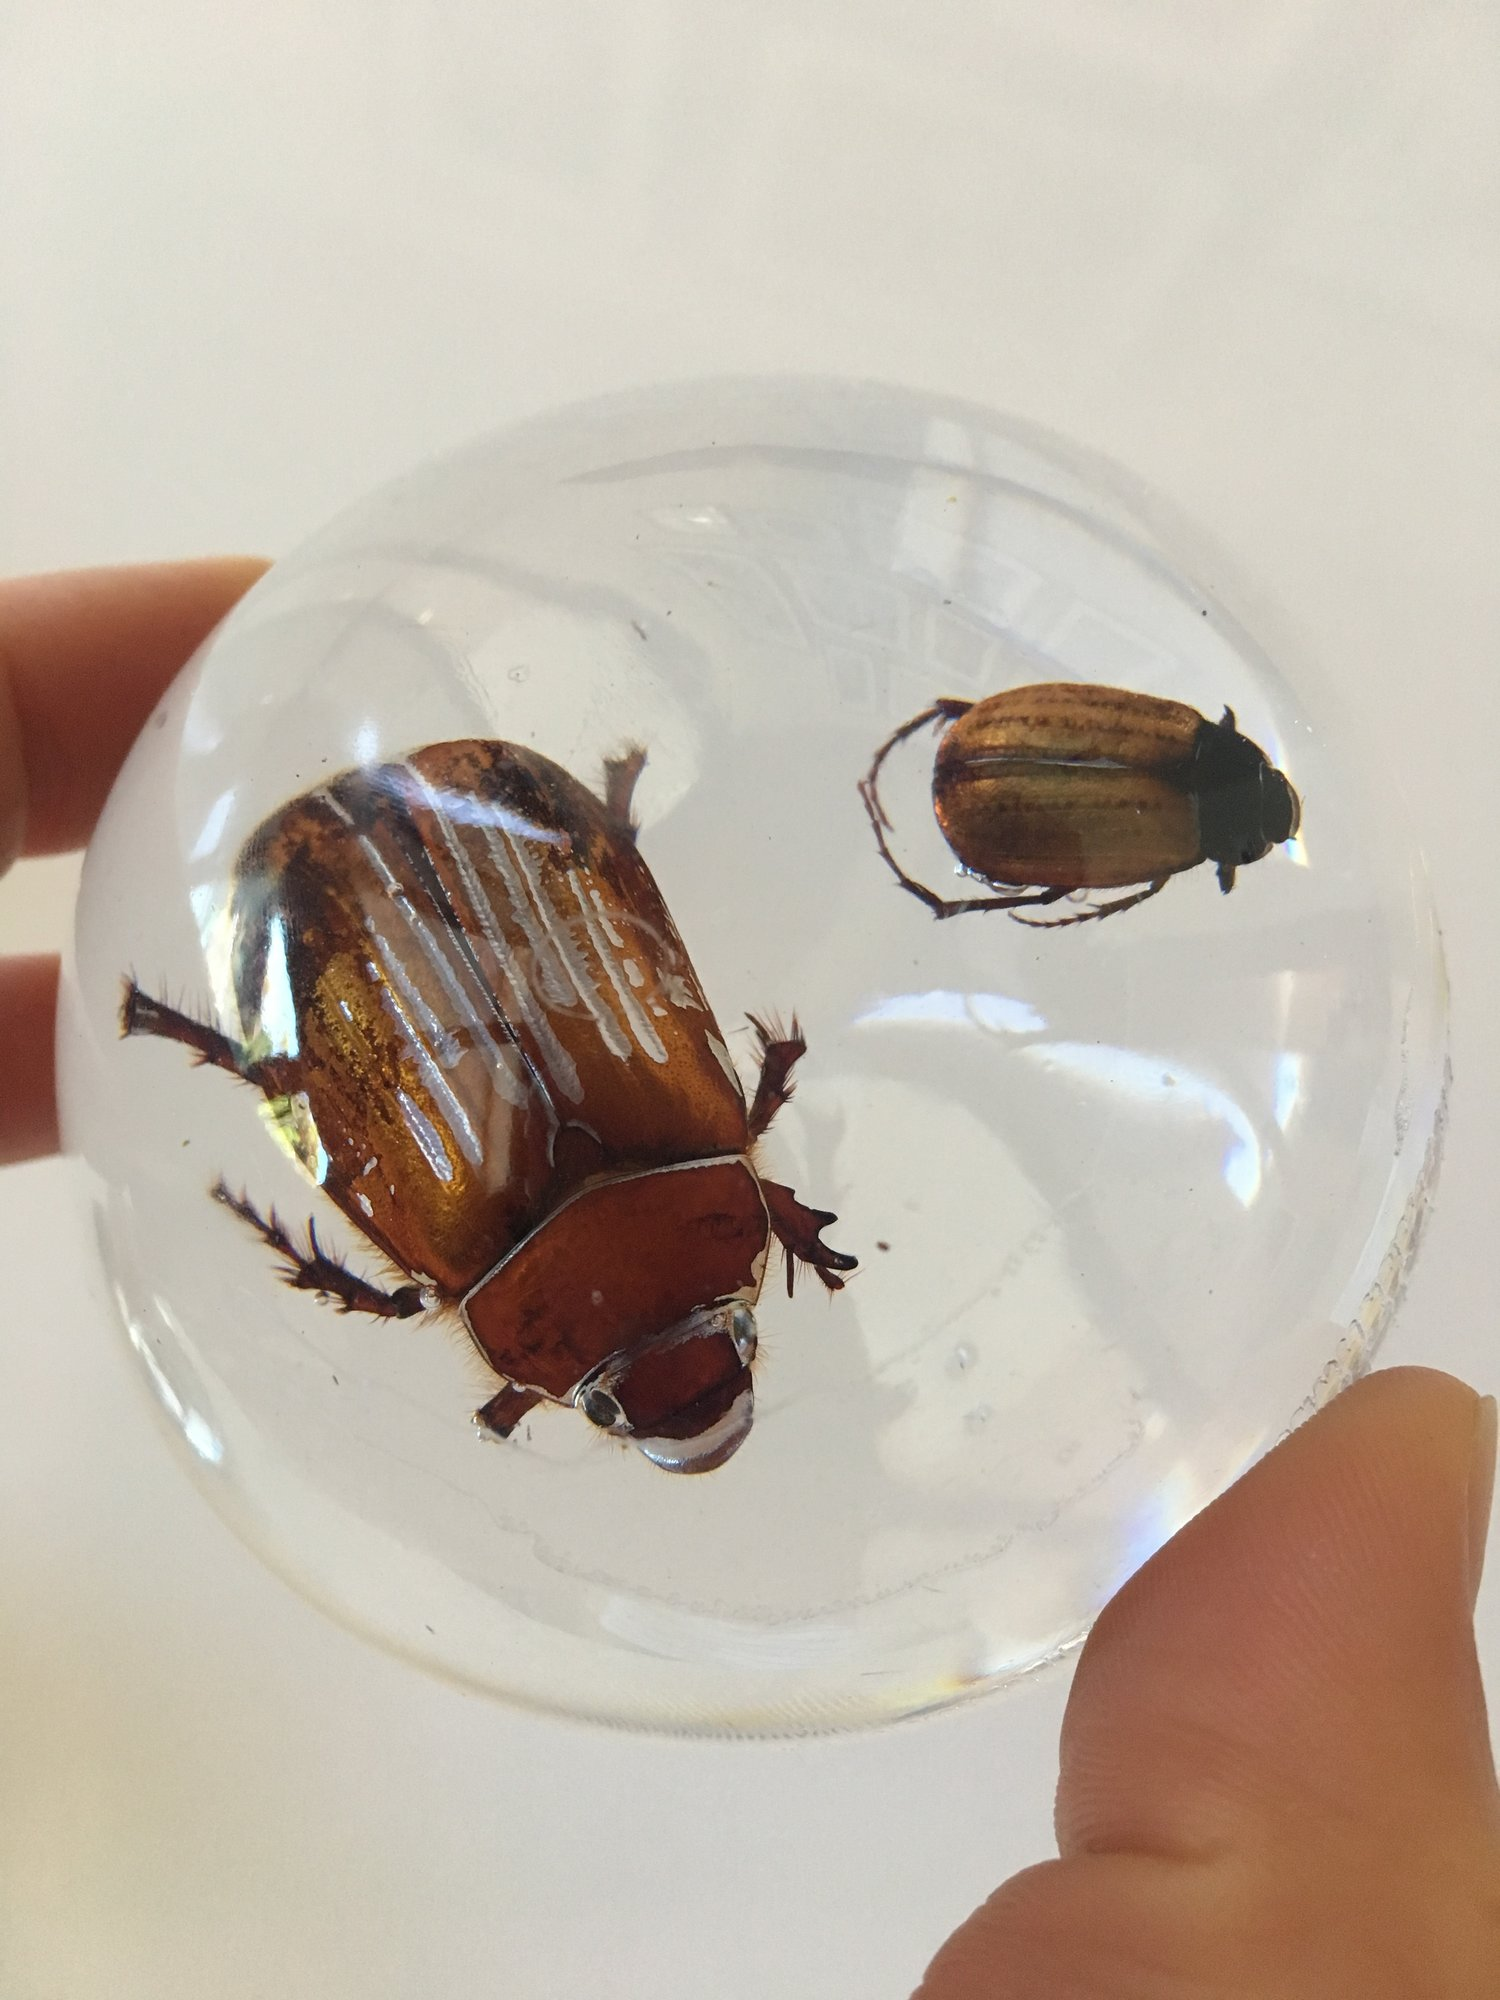 Kylie Howarth — How to Cast Insects and Bugs in Resin